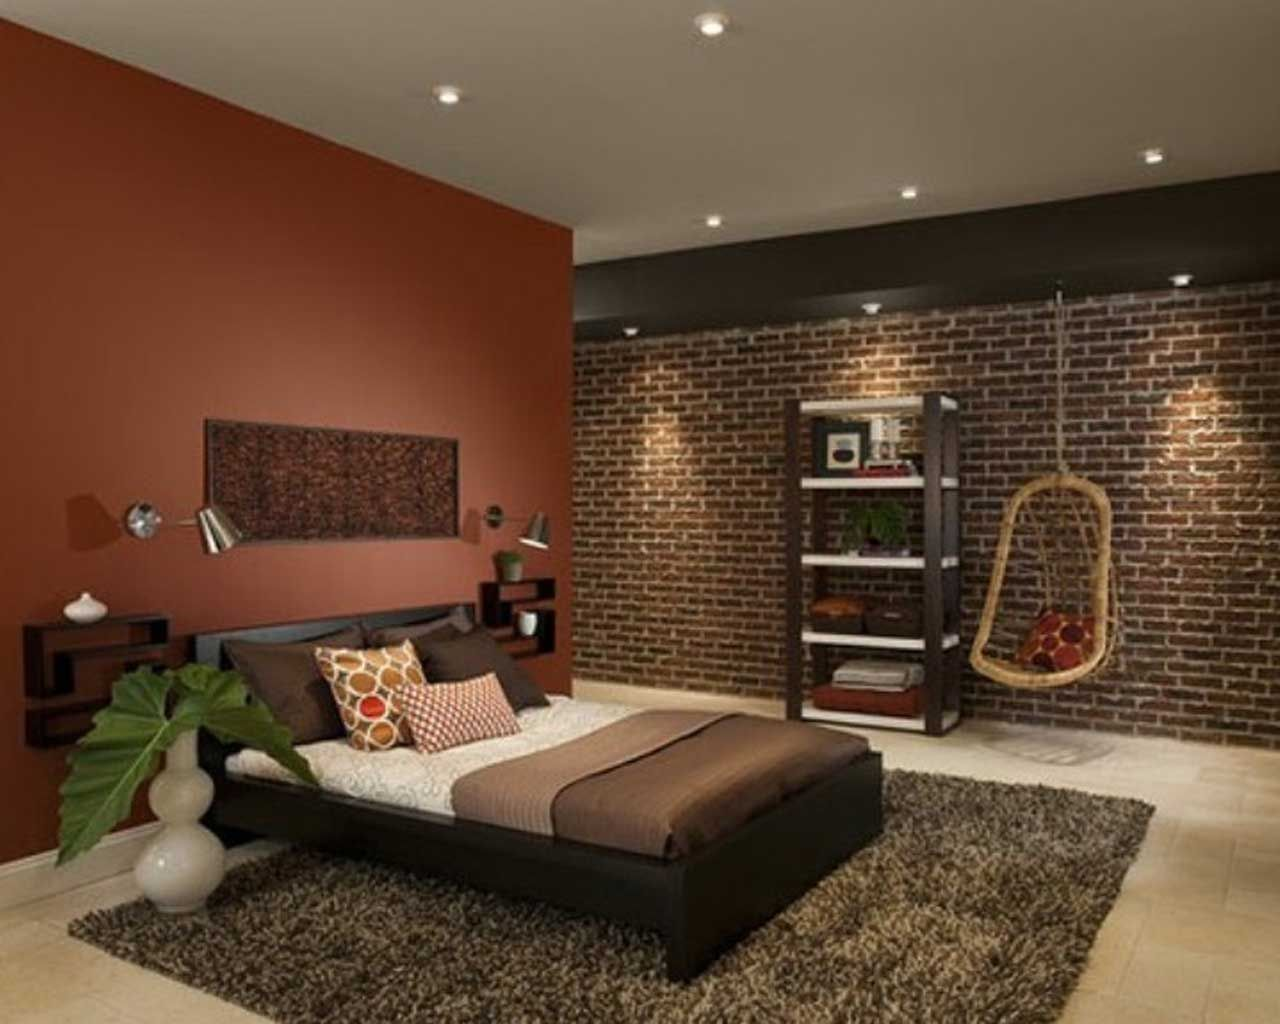 Bedrooms Design Ideas girls bedroom design ideas by pm4 pampered in luxury 1000 Images Makuuhuoneet Tekniikka Arkkitehti On Home Design Bedroom Ideas Dark Interiors Master Bedroom